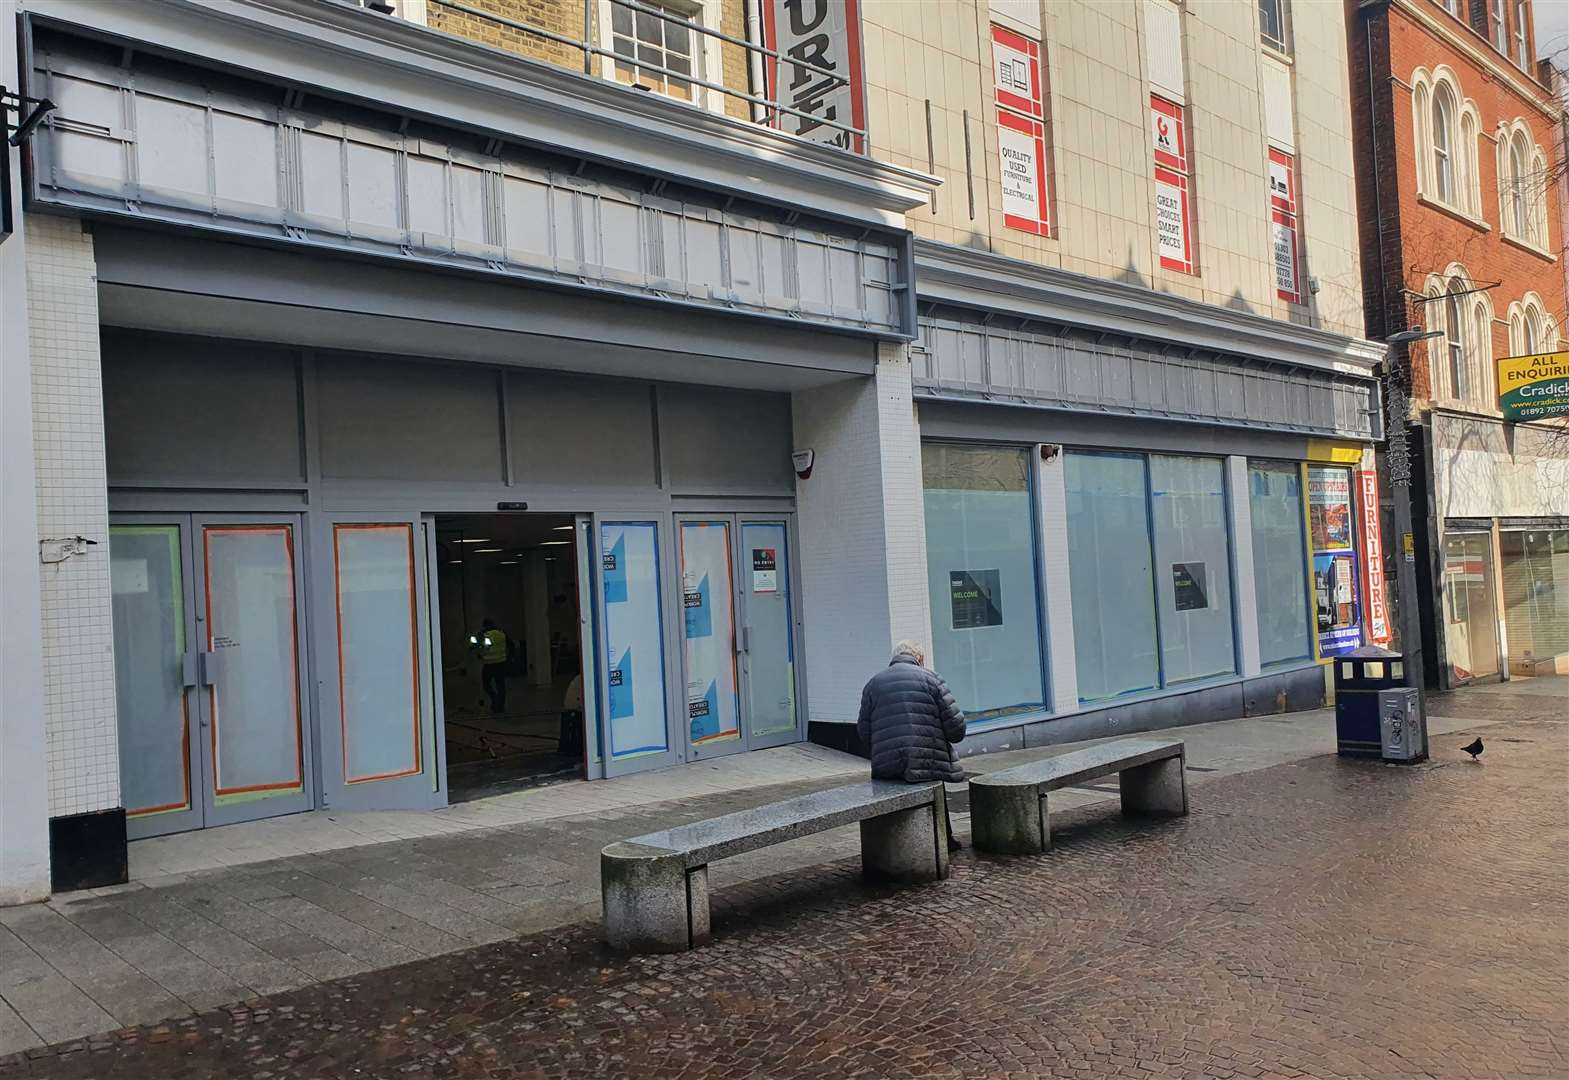 Town's second Jobcentre to open due to pandemic